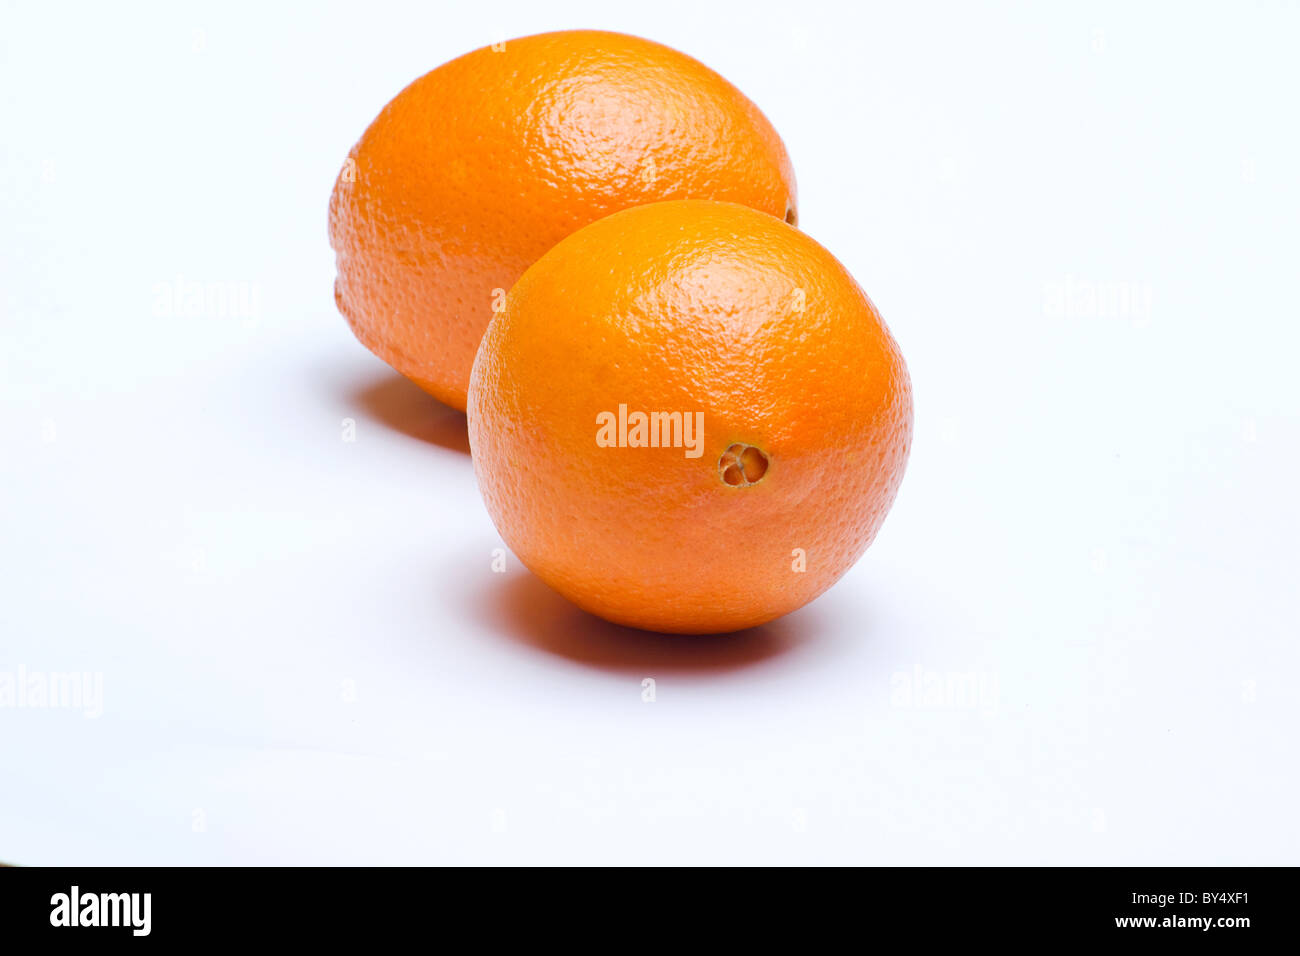 Close-up of two oranges on white background - Stock Image